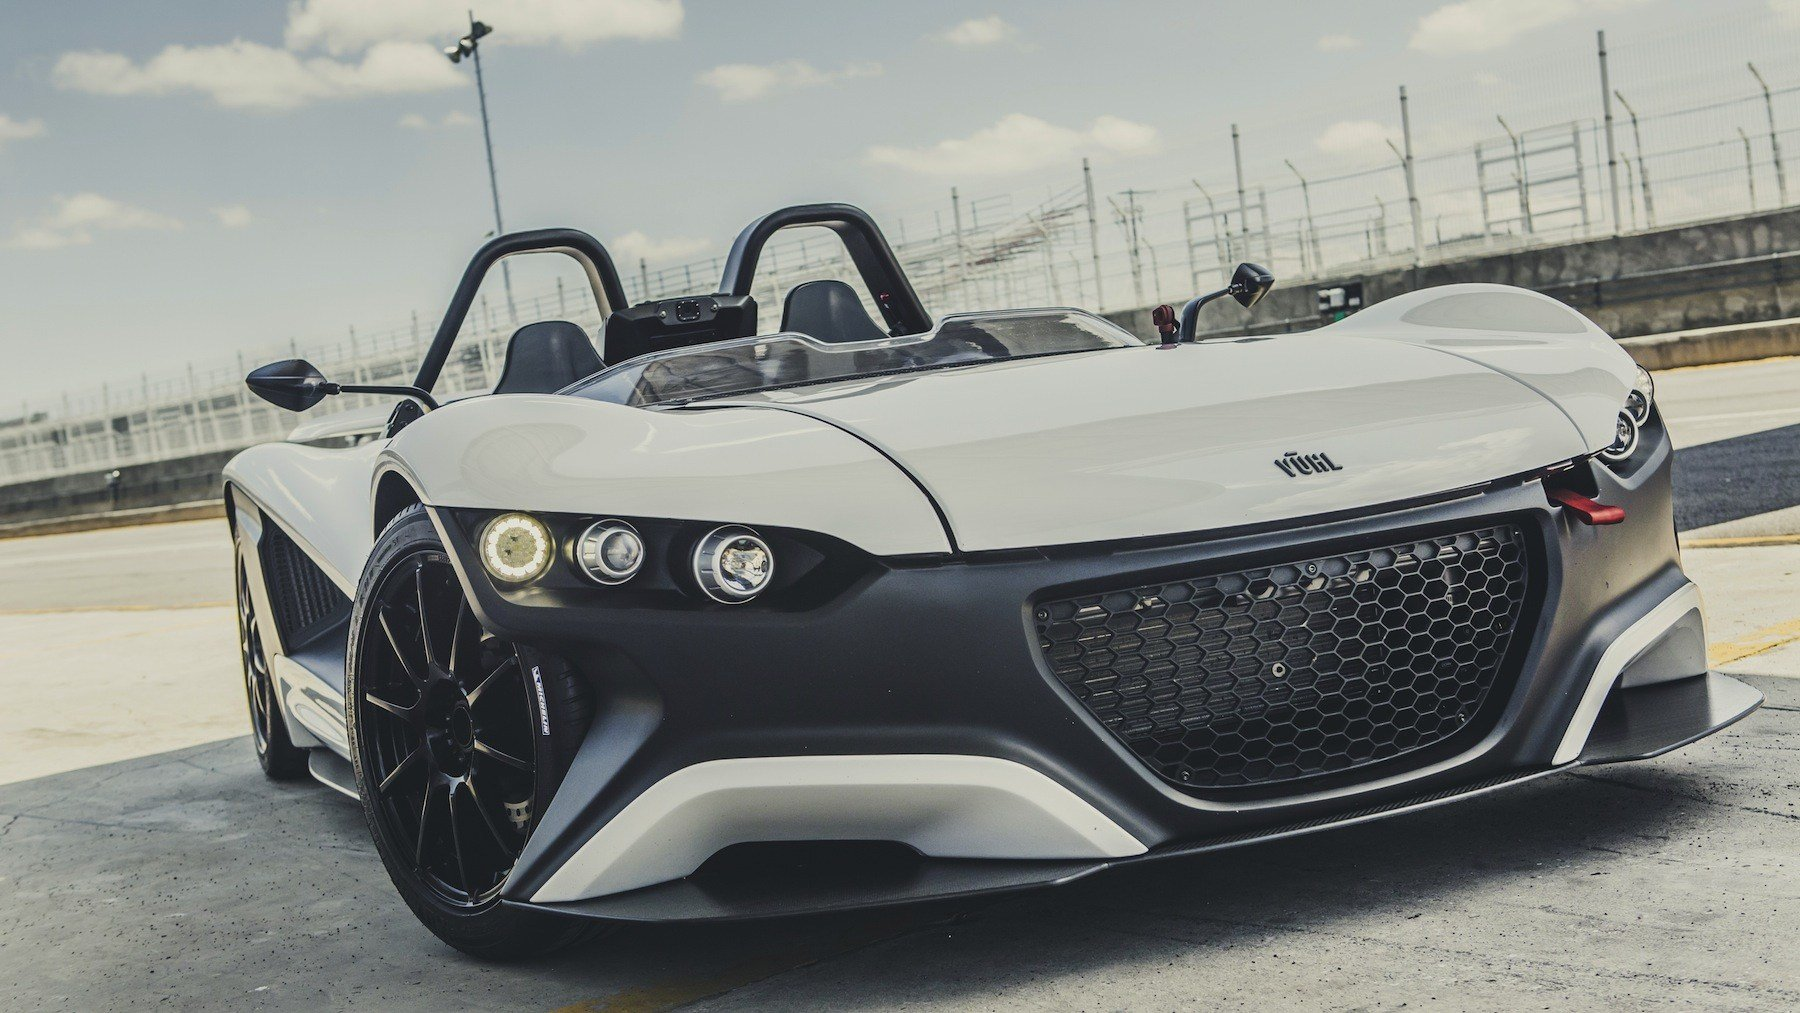 New Vuhl 05 725Kg 213Kw Mexican Supercar Officially Revealed On This Month